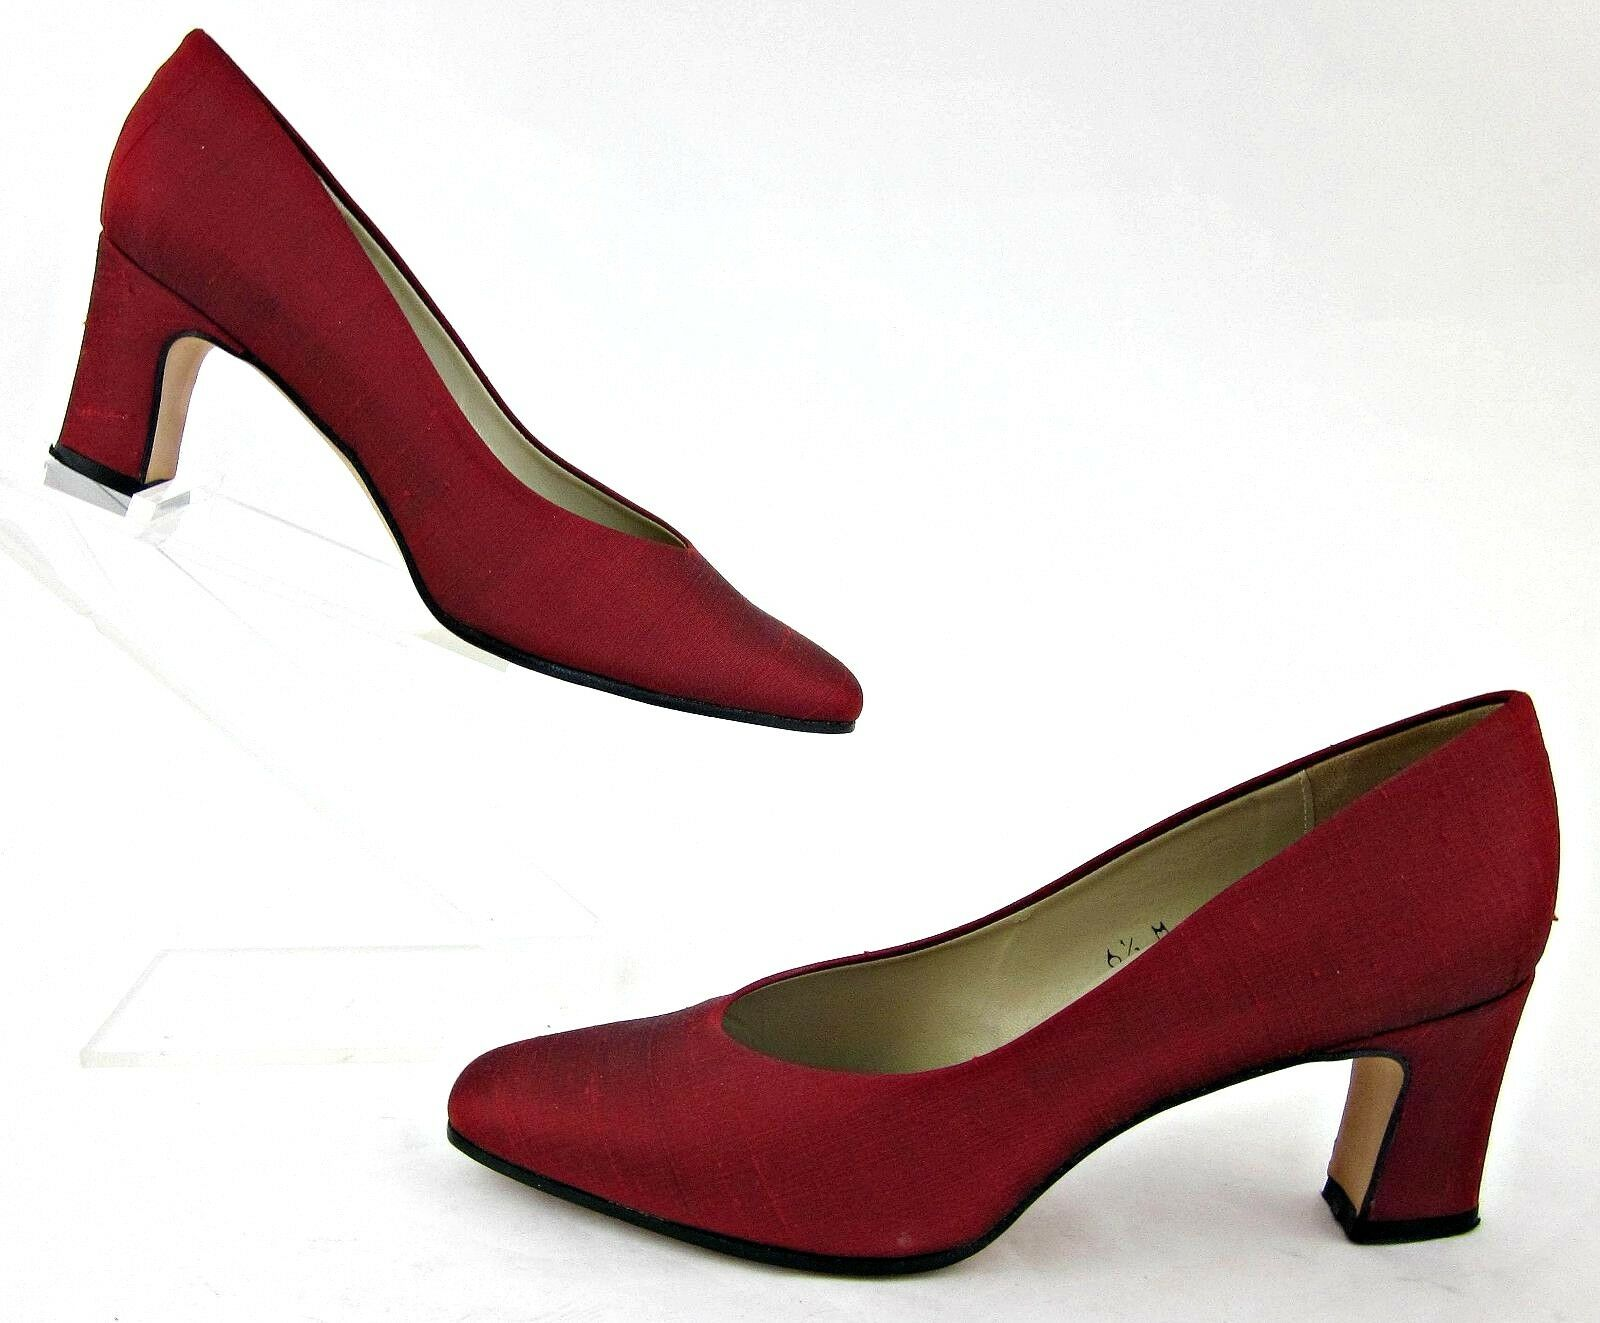 Etienne Aigner 'Taylor' Dress Pumps RED Fabric 6.5M Made In Spain